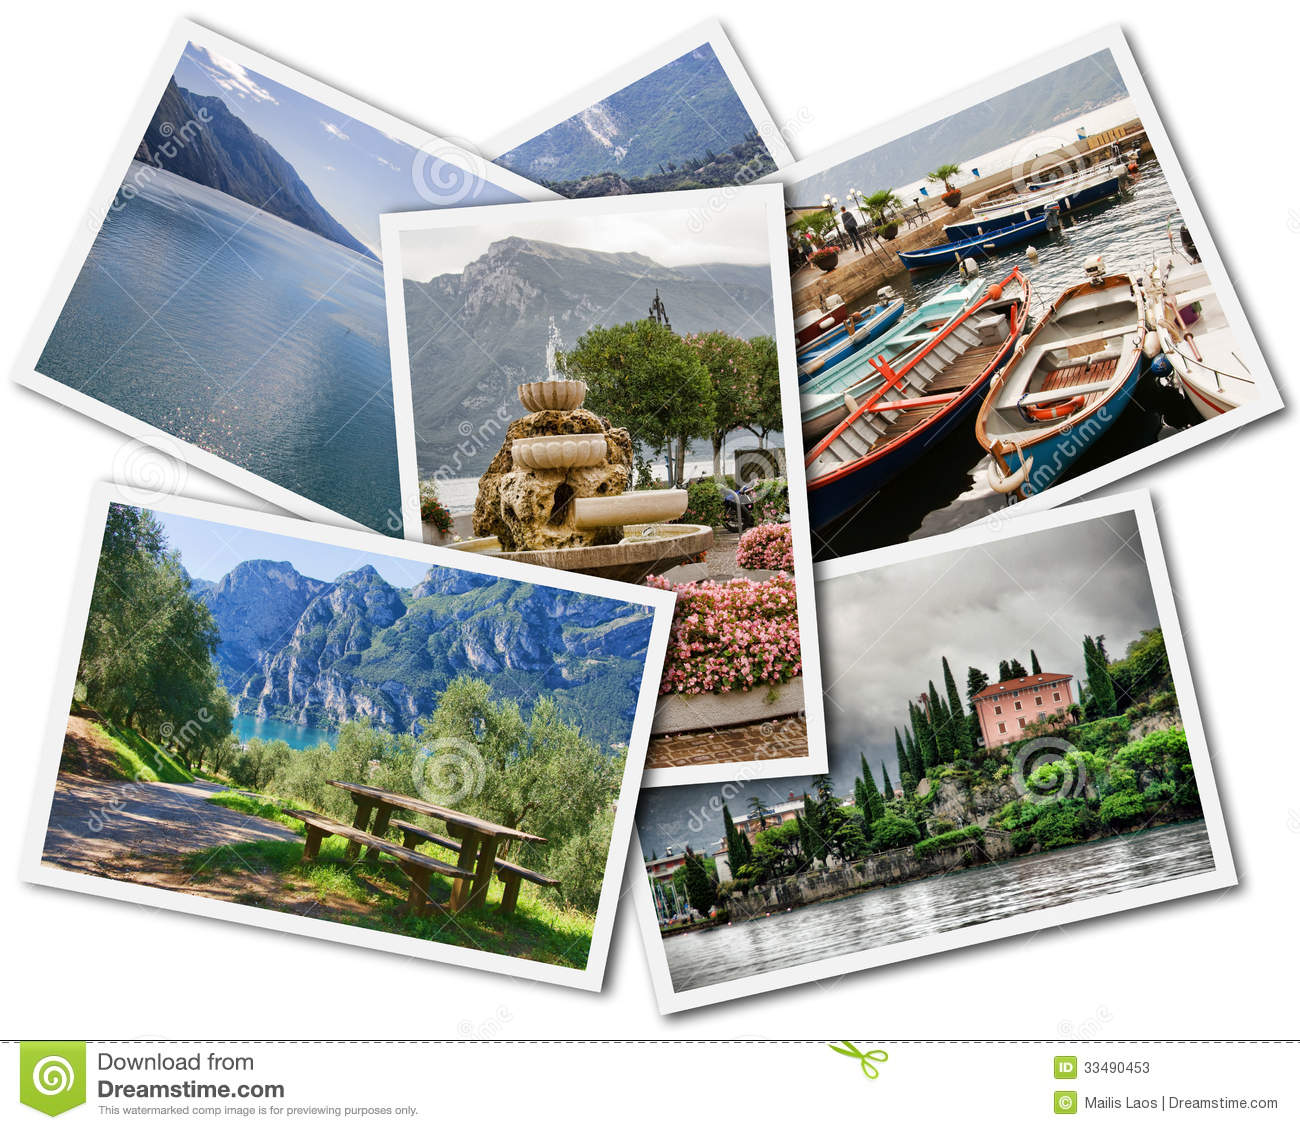 Download Lake Garda Collage stock image. Image of artistic, isolated - 33490453